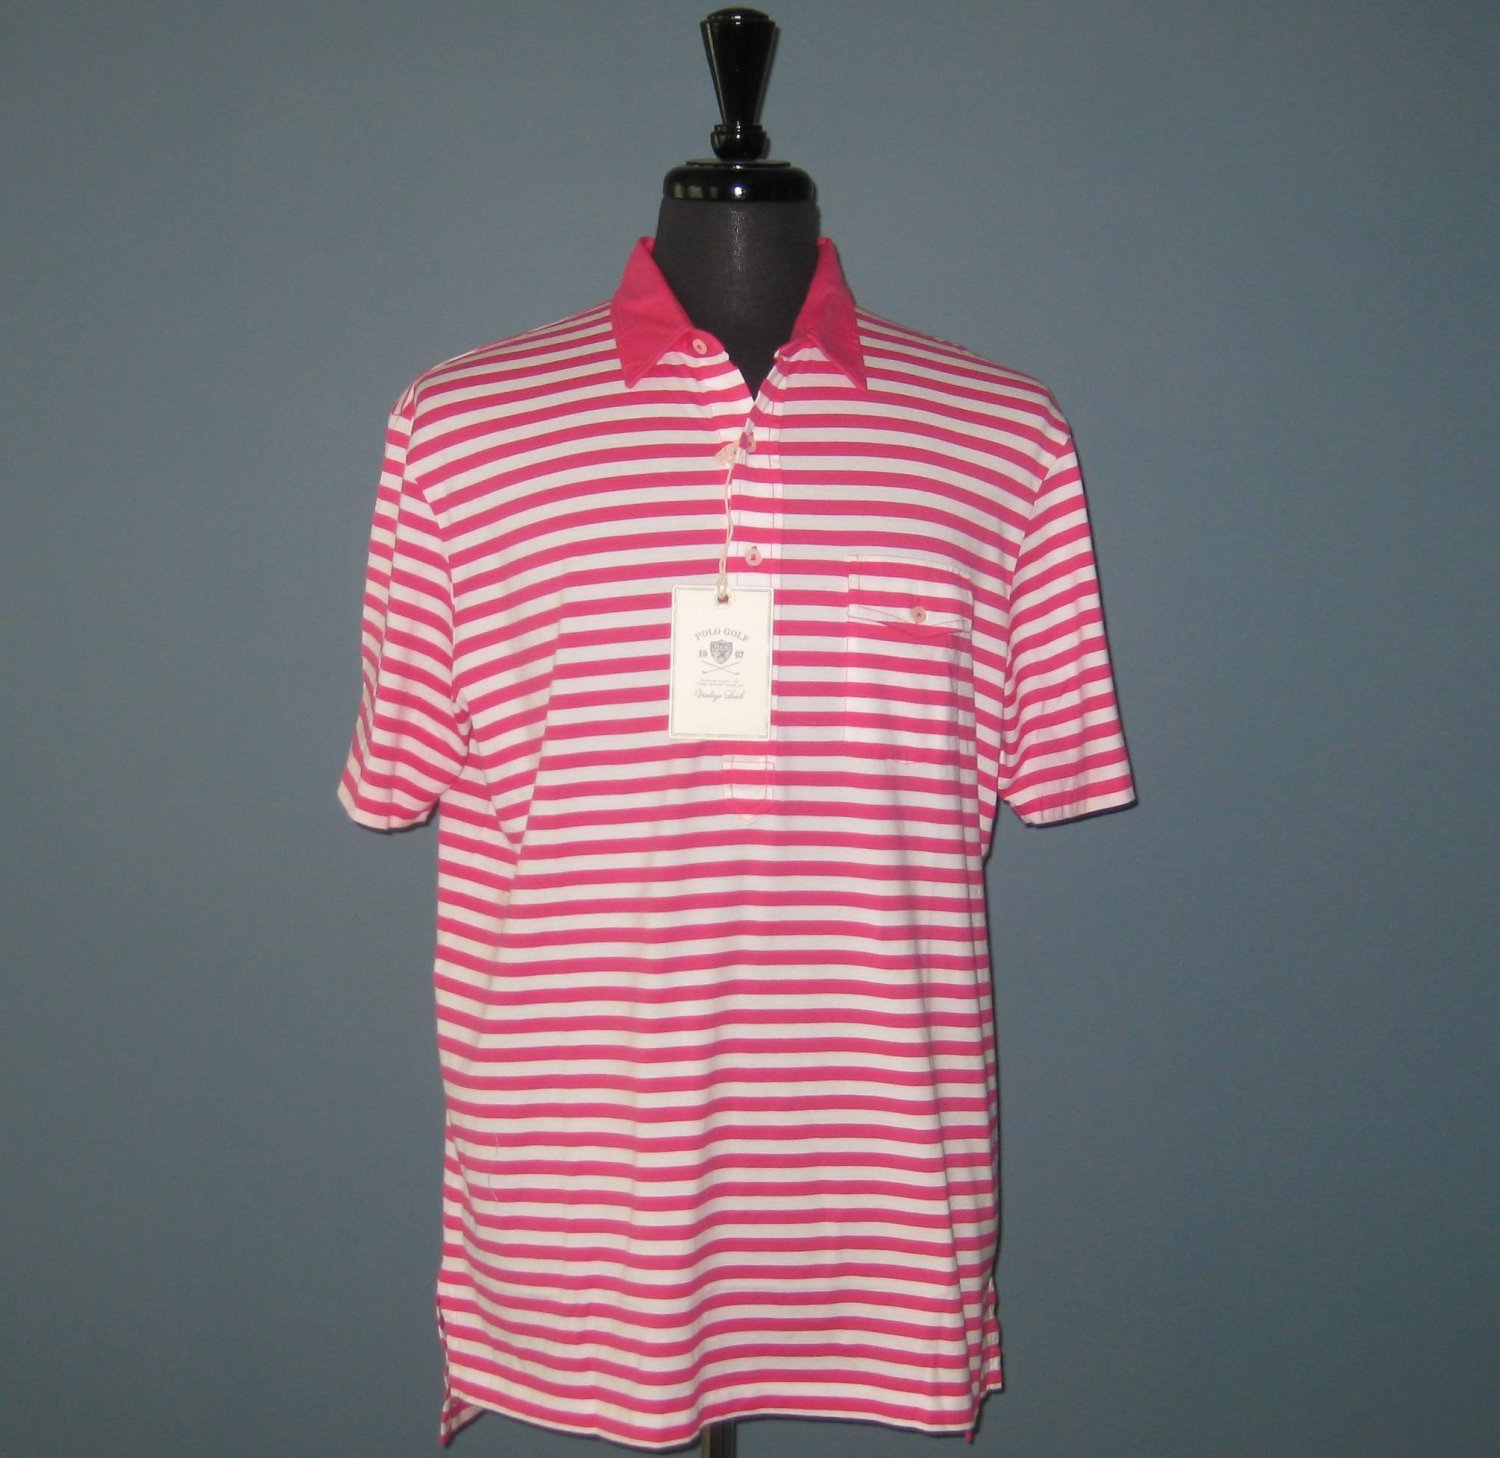 NWT Polo Golf Ralph Lauren Pink & White Stripe S/S Pima Cotton Polo Shirt - L